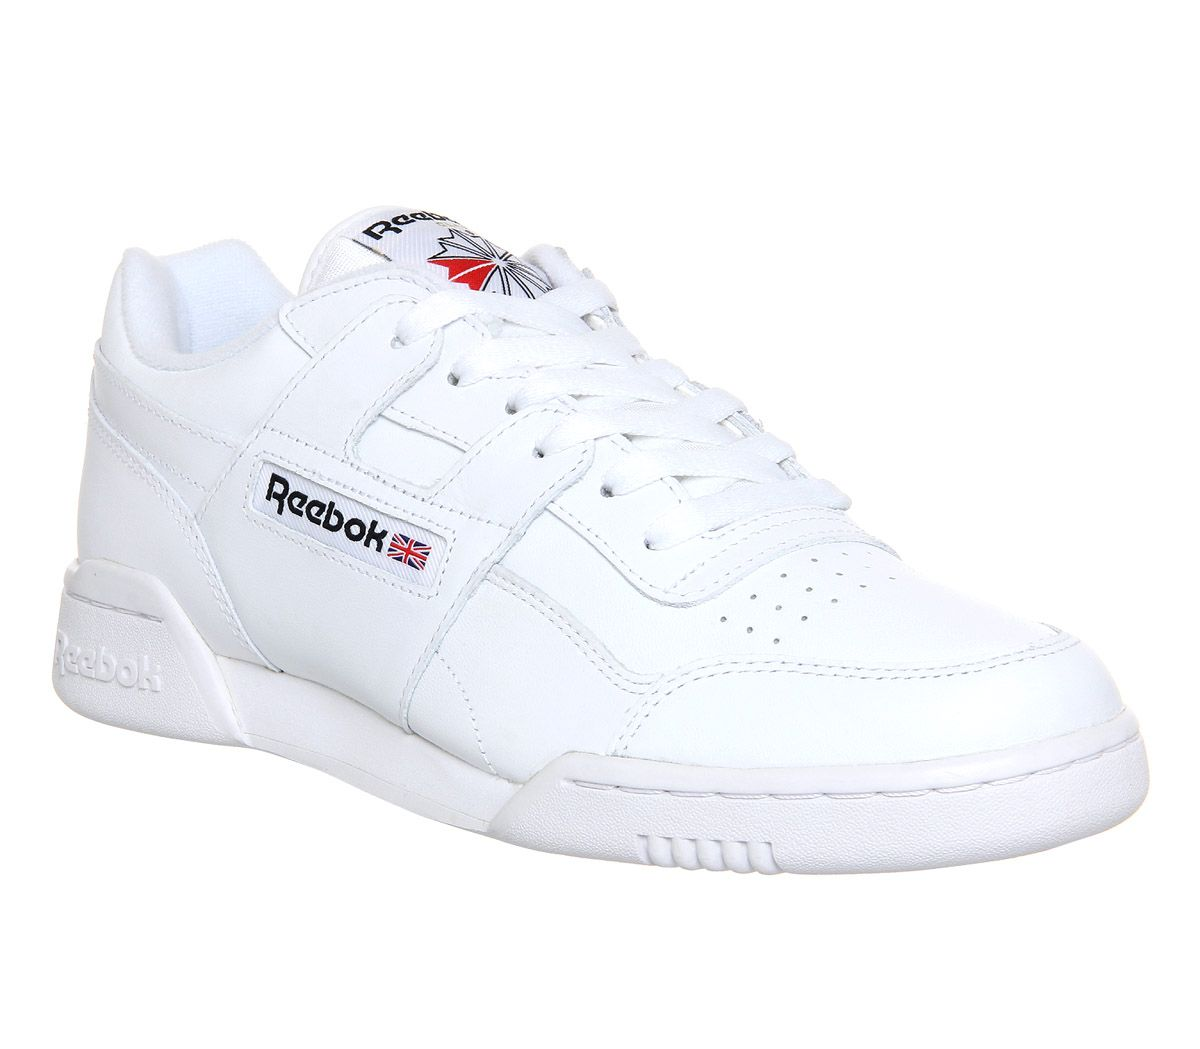 Reebok Workout Plus White Black - His trainers